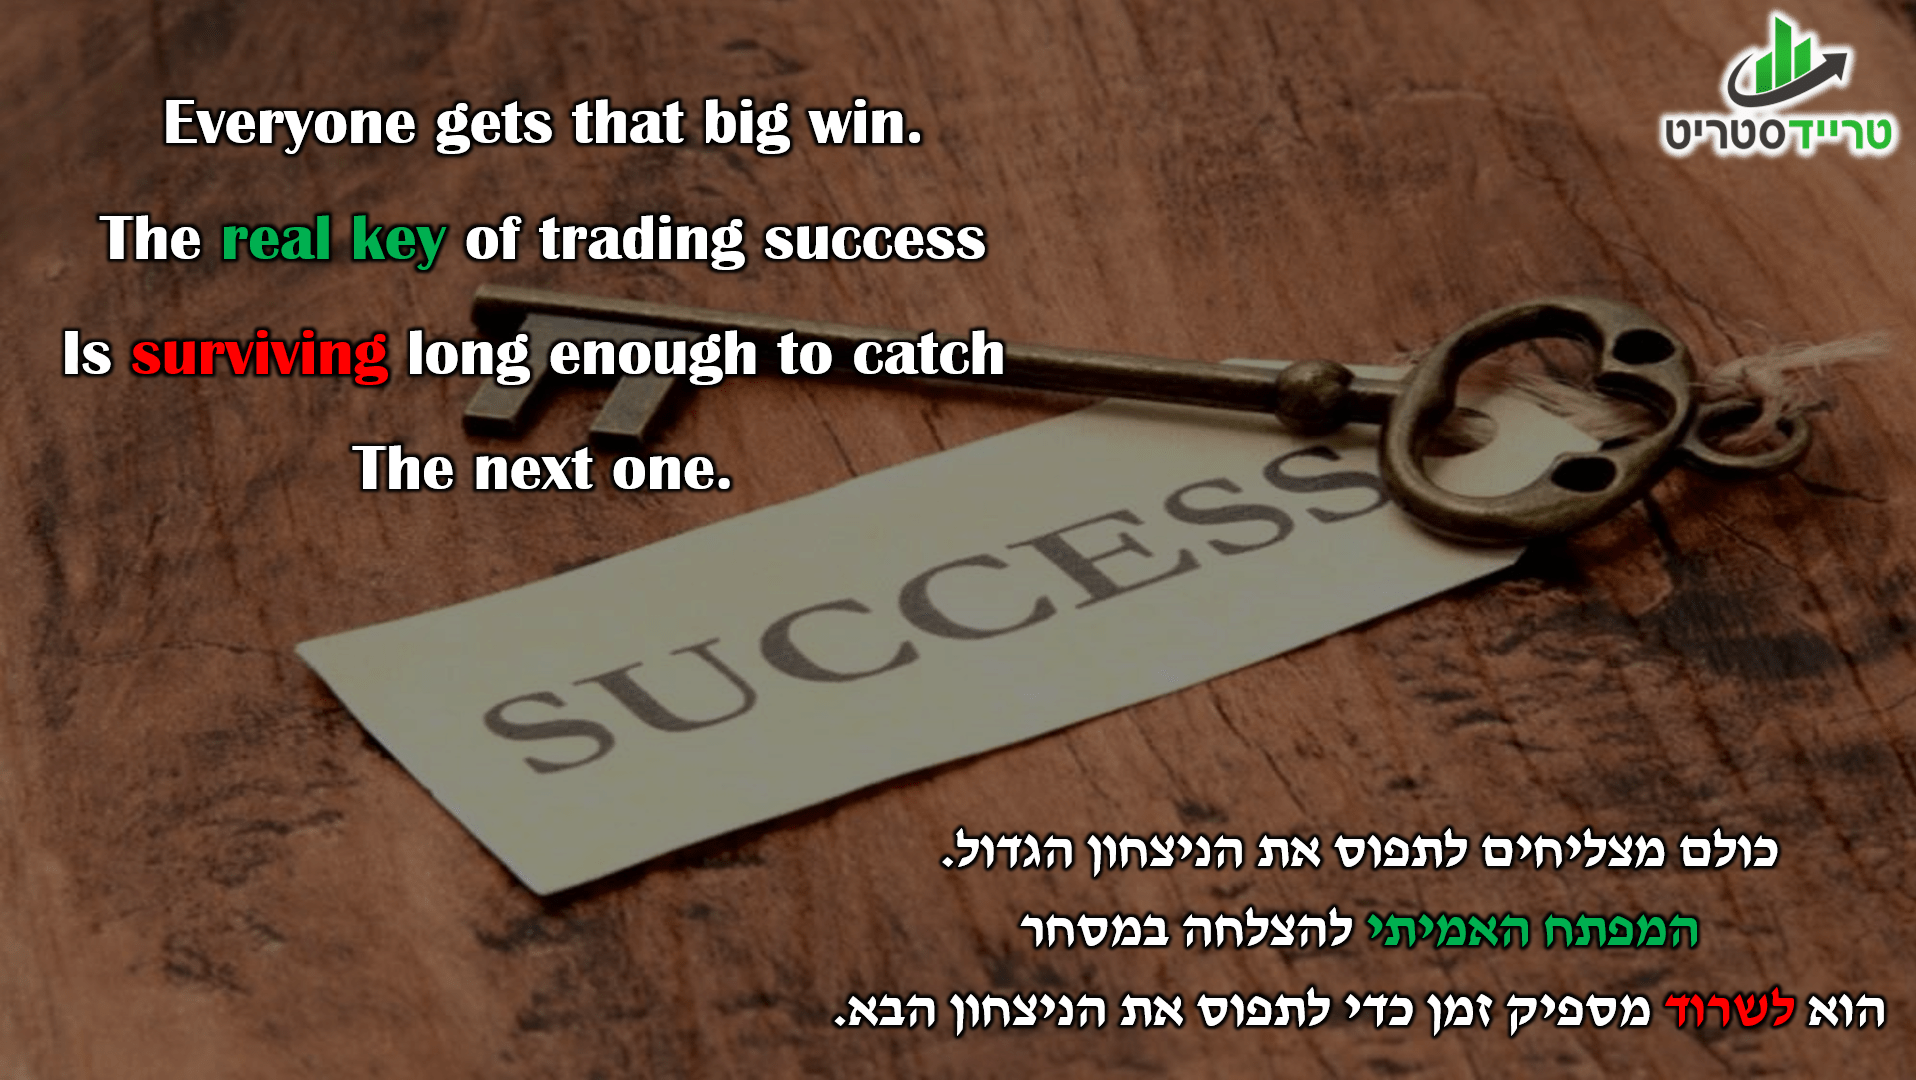 Everyone gets that big win. The real key of trading success